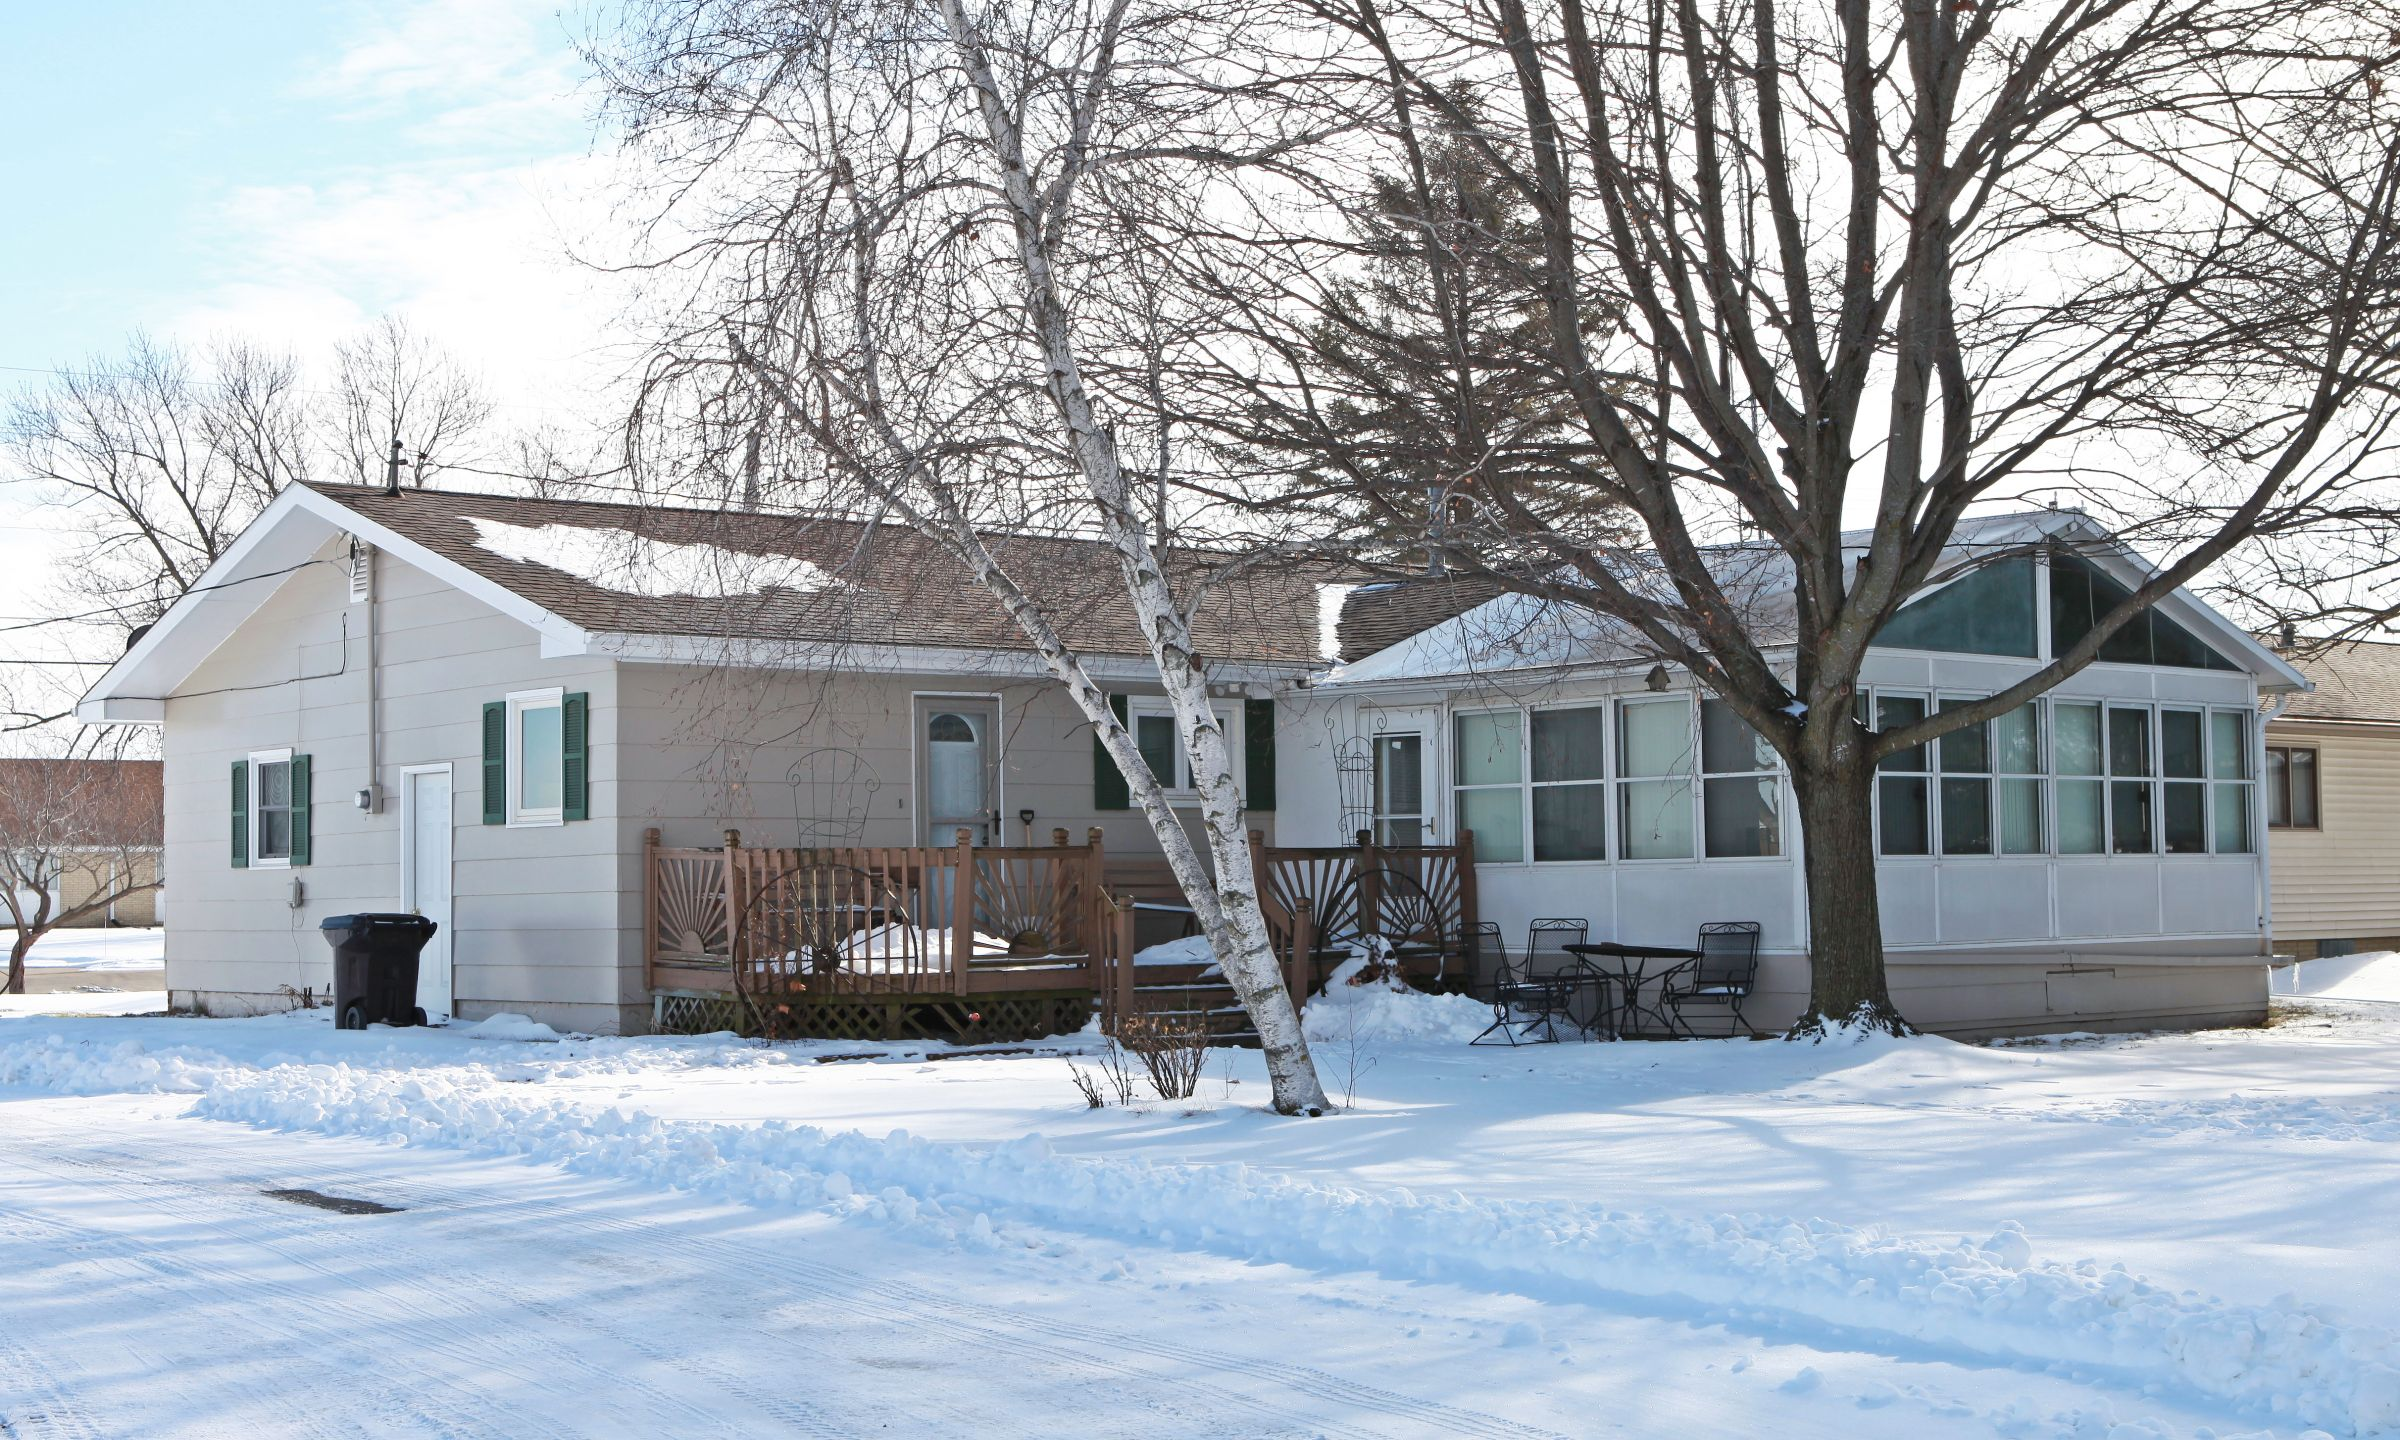 residential-lucas-county-iowa-0-acres-listing-number-15321-4-2021-01-18-210428.jpg